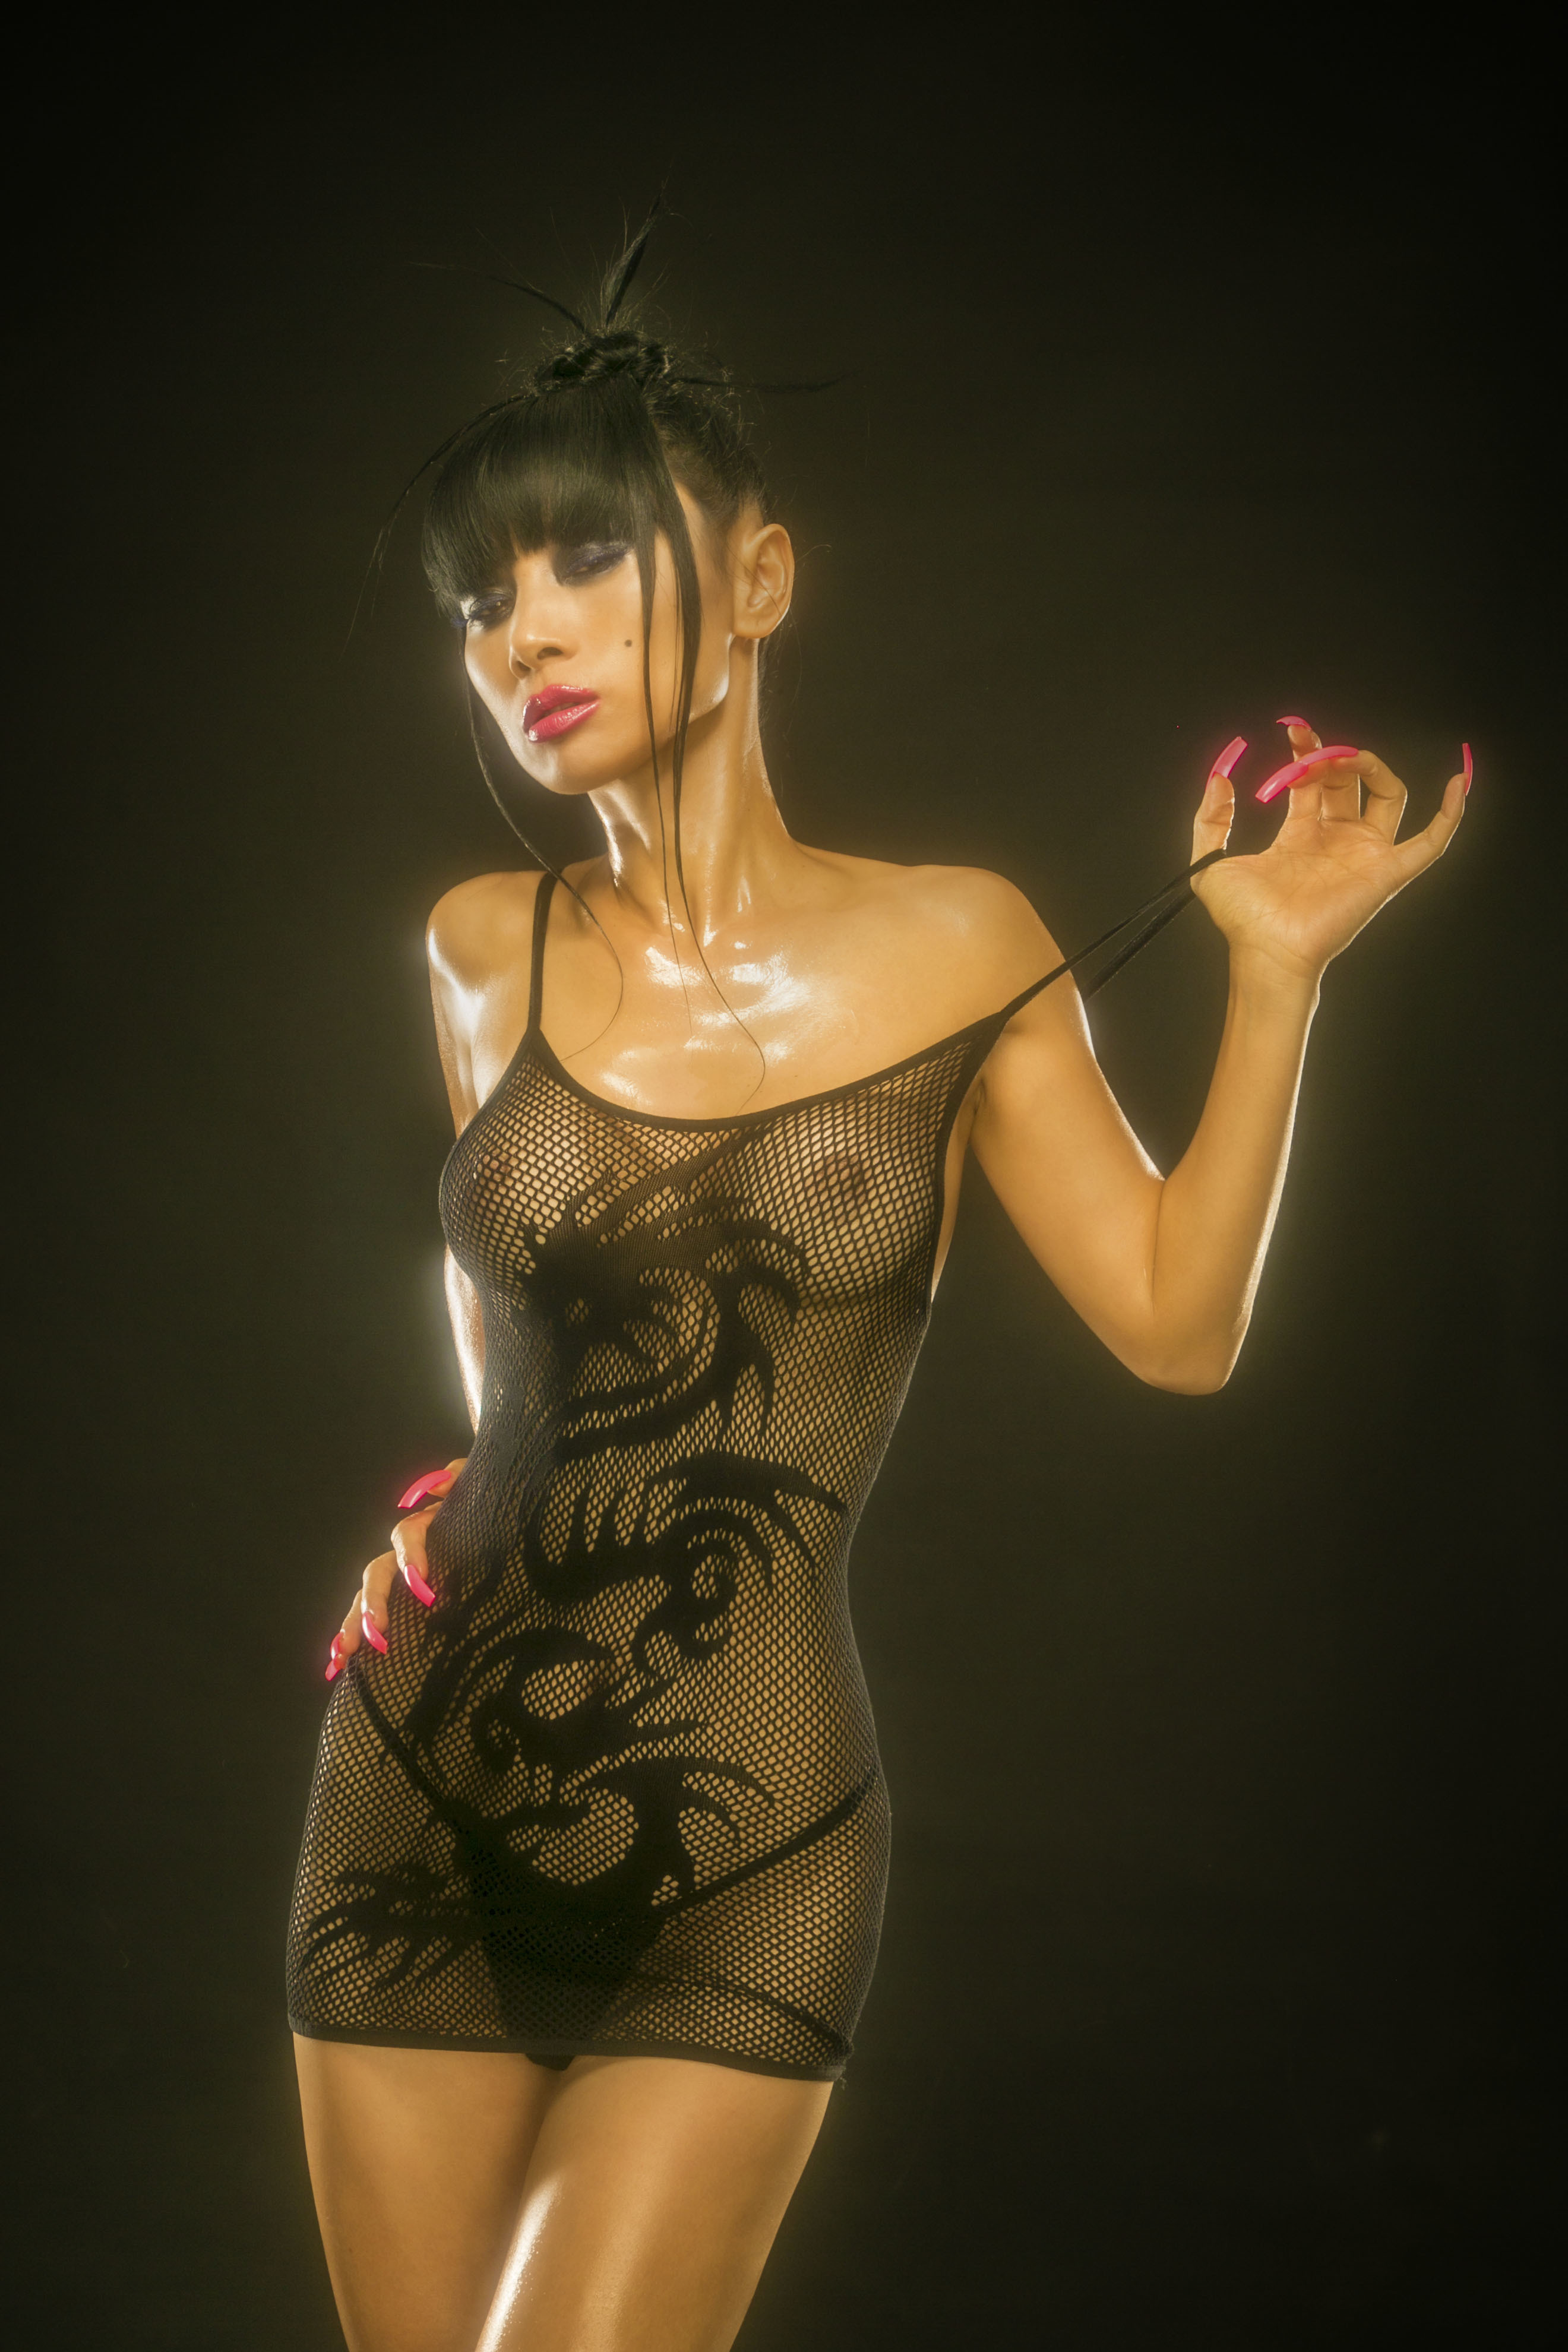 Bai Ling Nude bai ling is still alive - vice